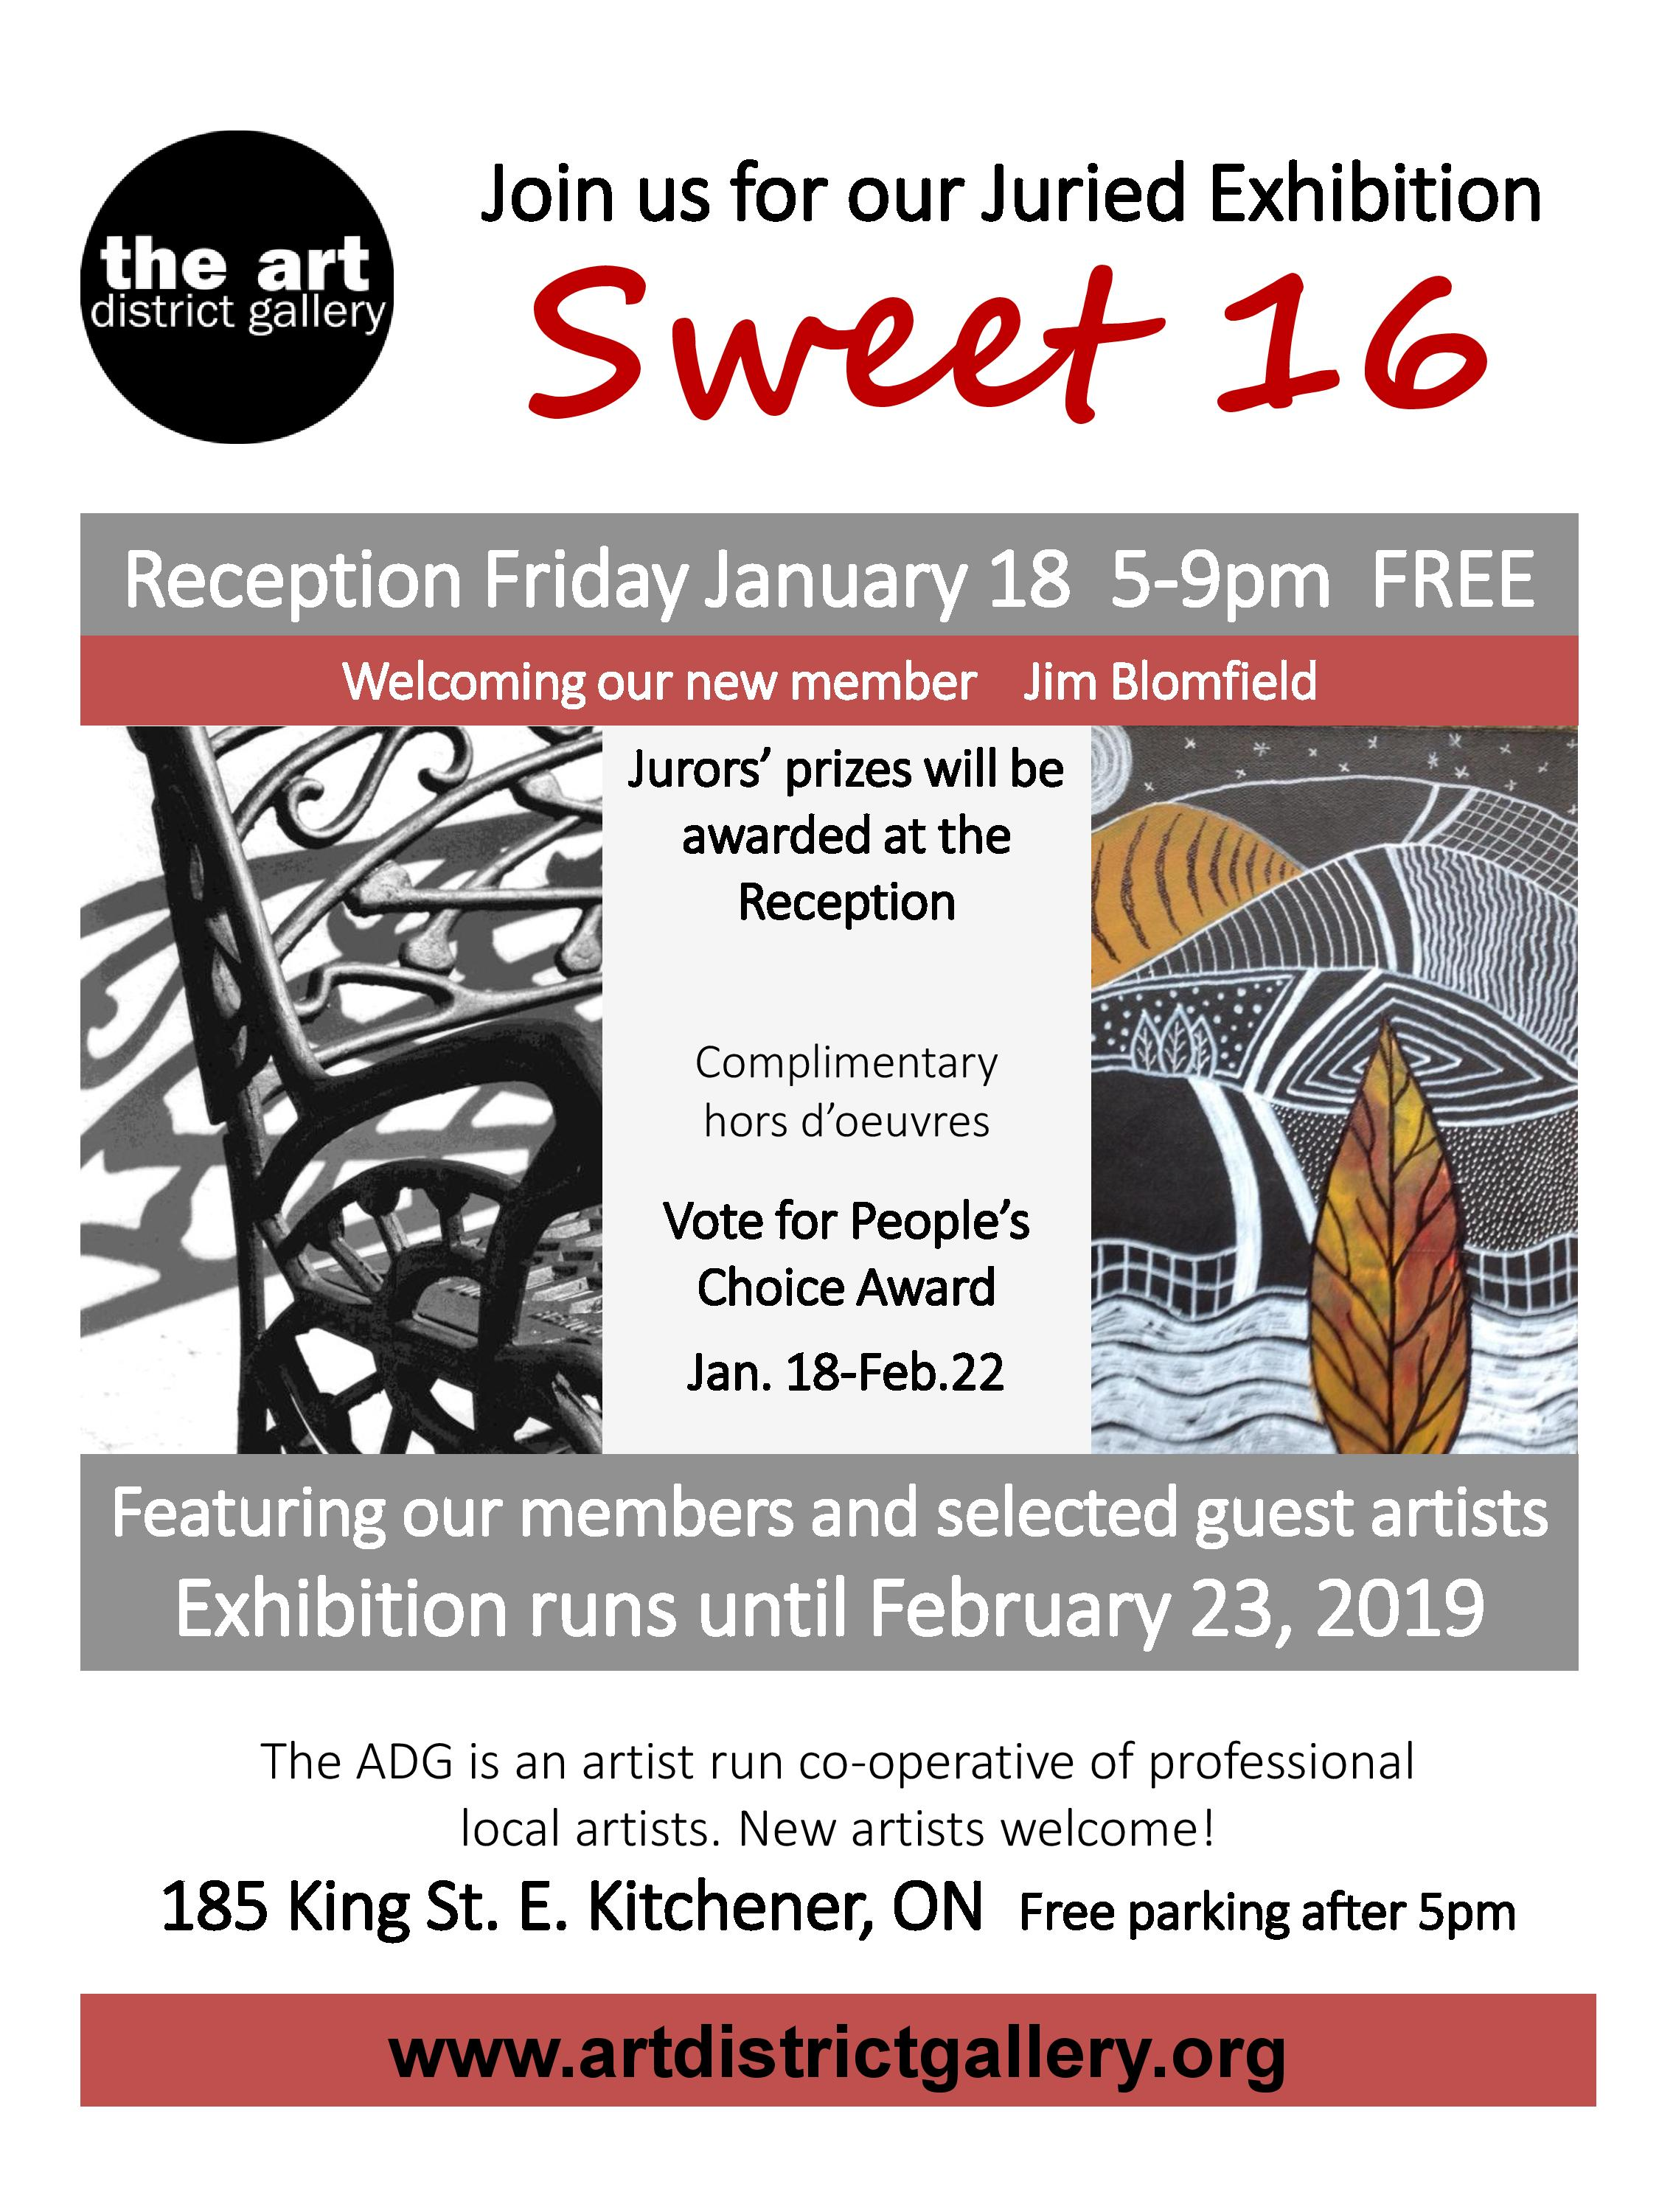 Sweet 16 Juried Exhibition at The Art District Gallery - Reception Friday, January 18 5-9 pmShow runs util February 23, 2019